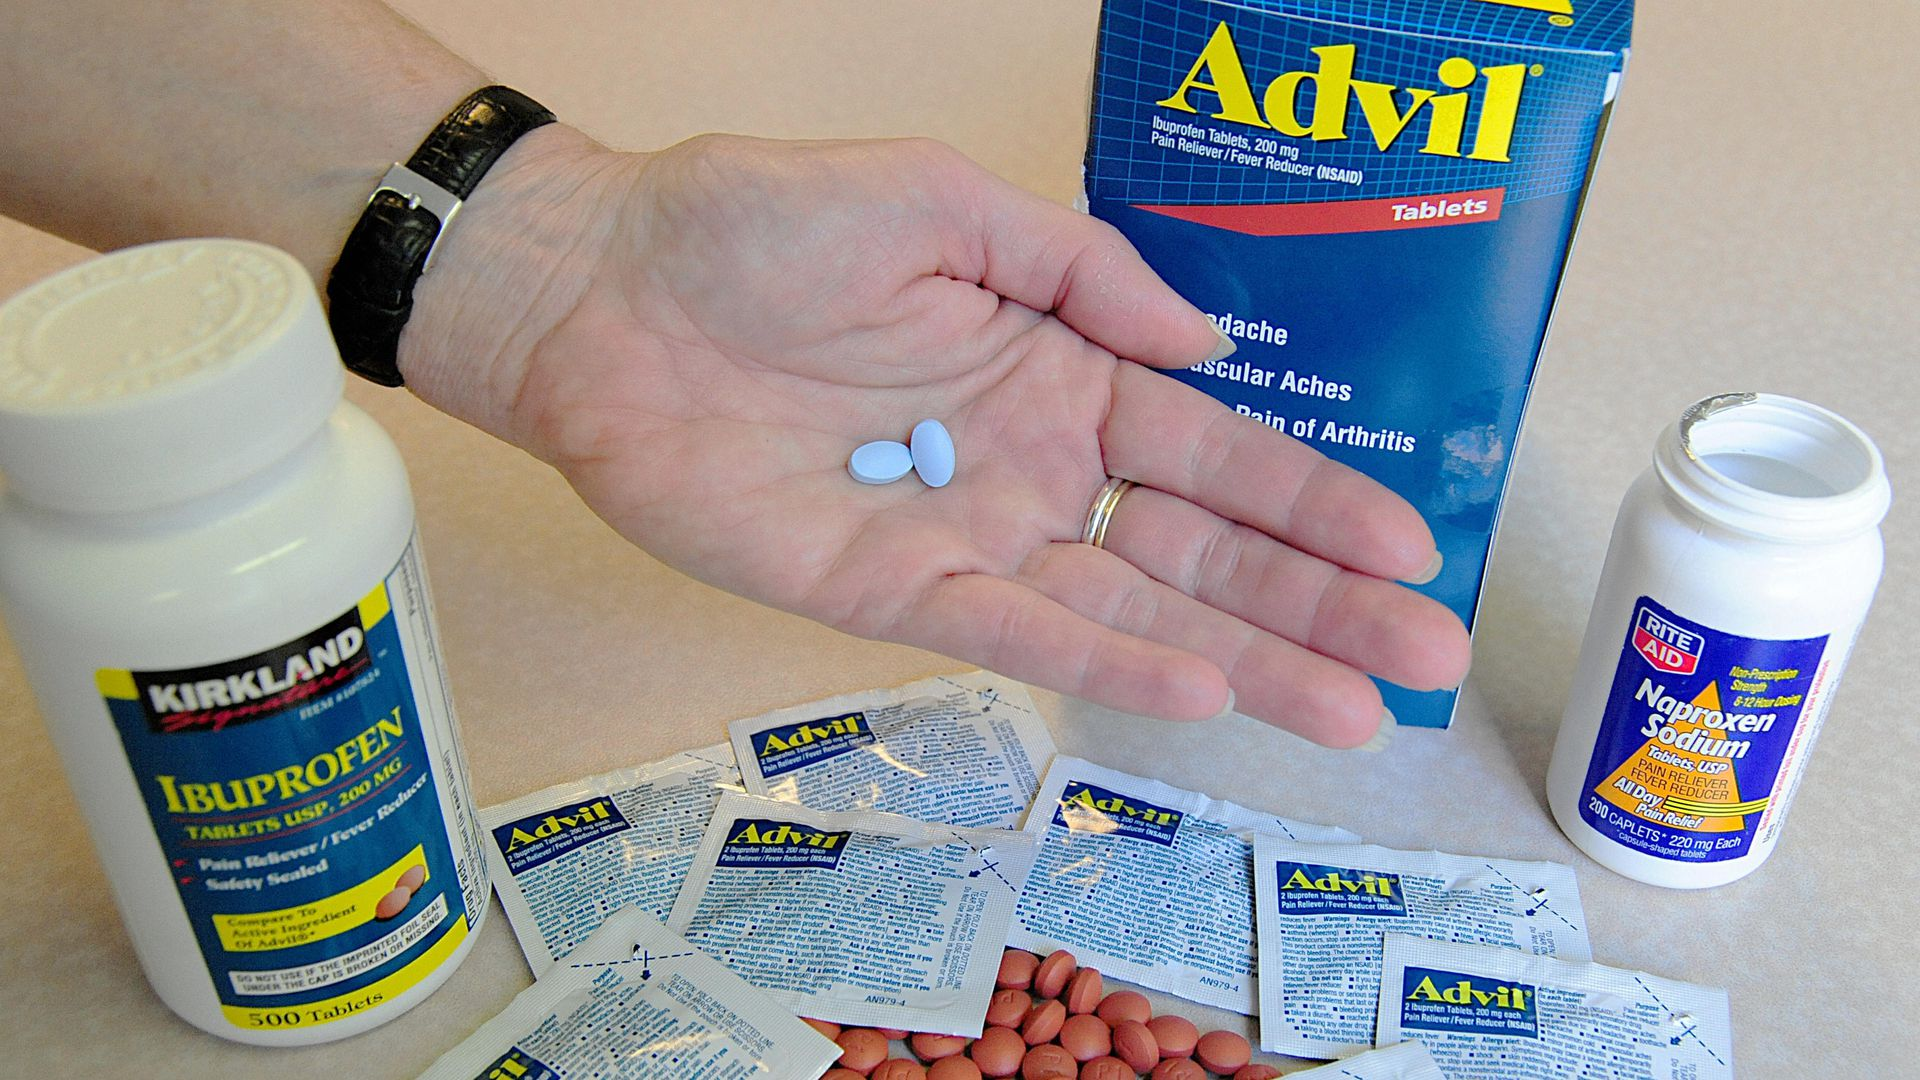 Brand and generic over-the-counter pain medications.